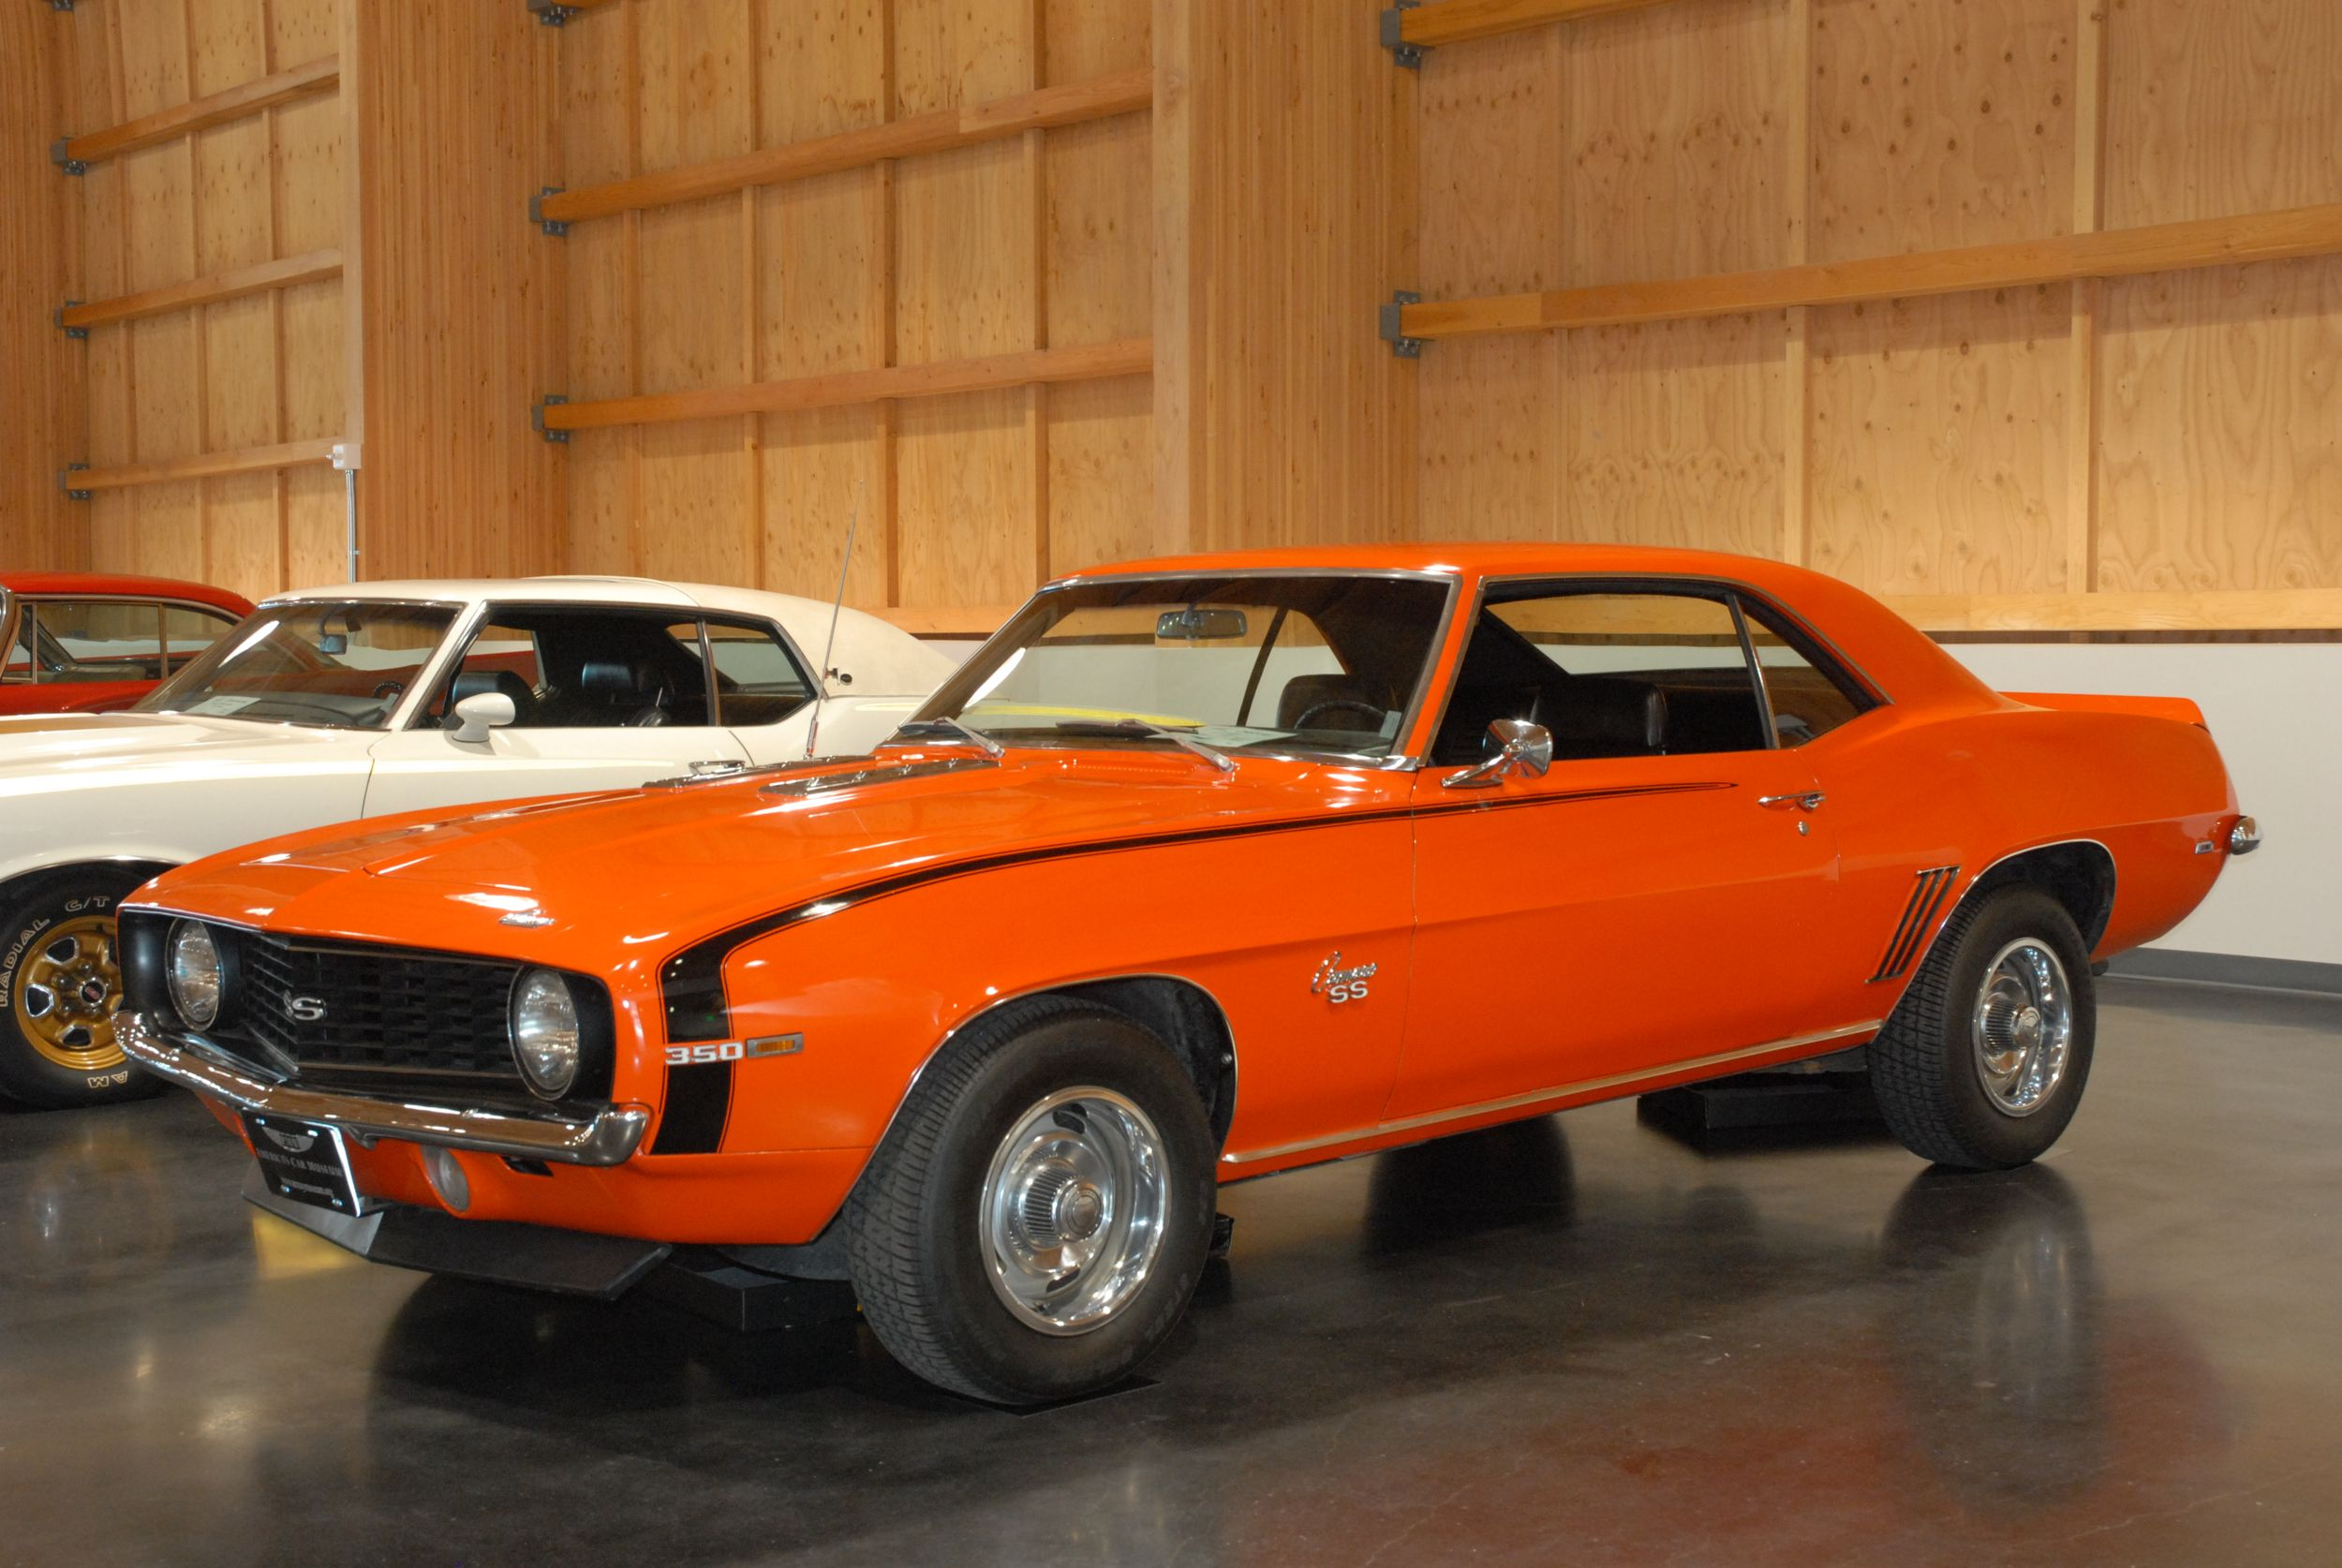 A 1969 Chevy Camaro SS Sport Coupe on display.